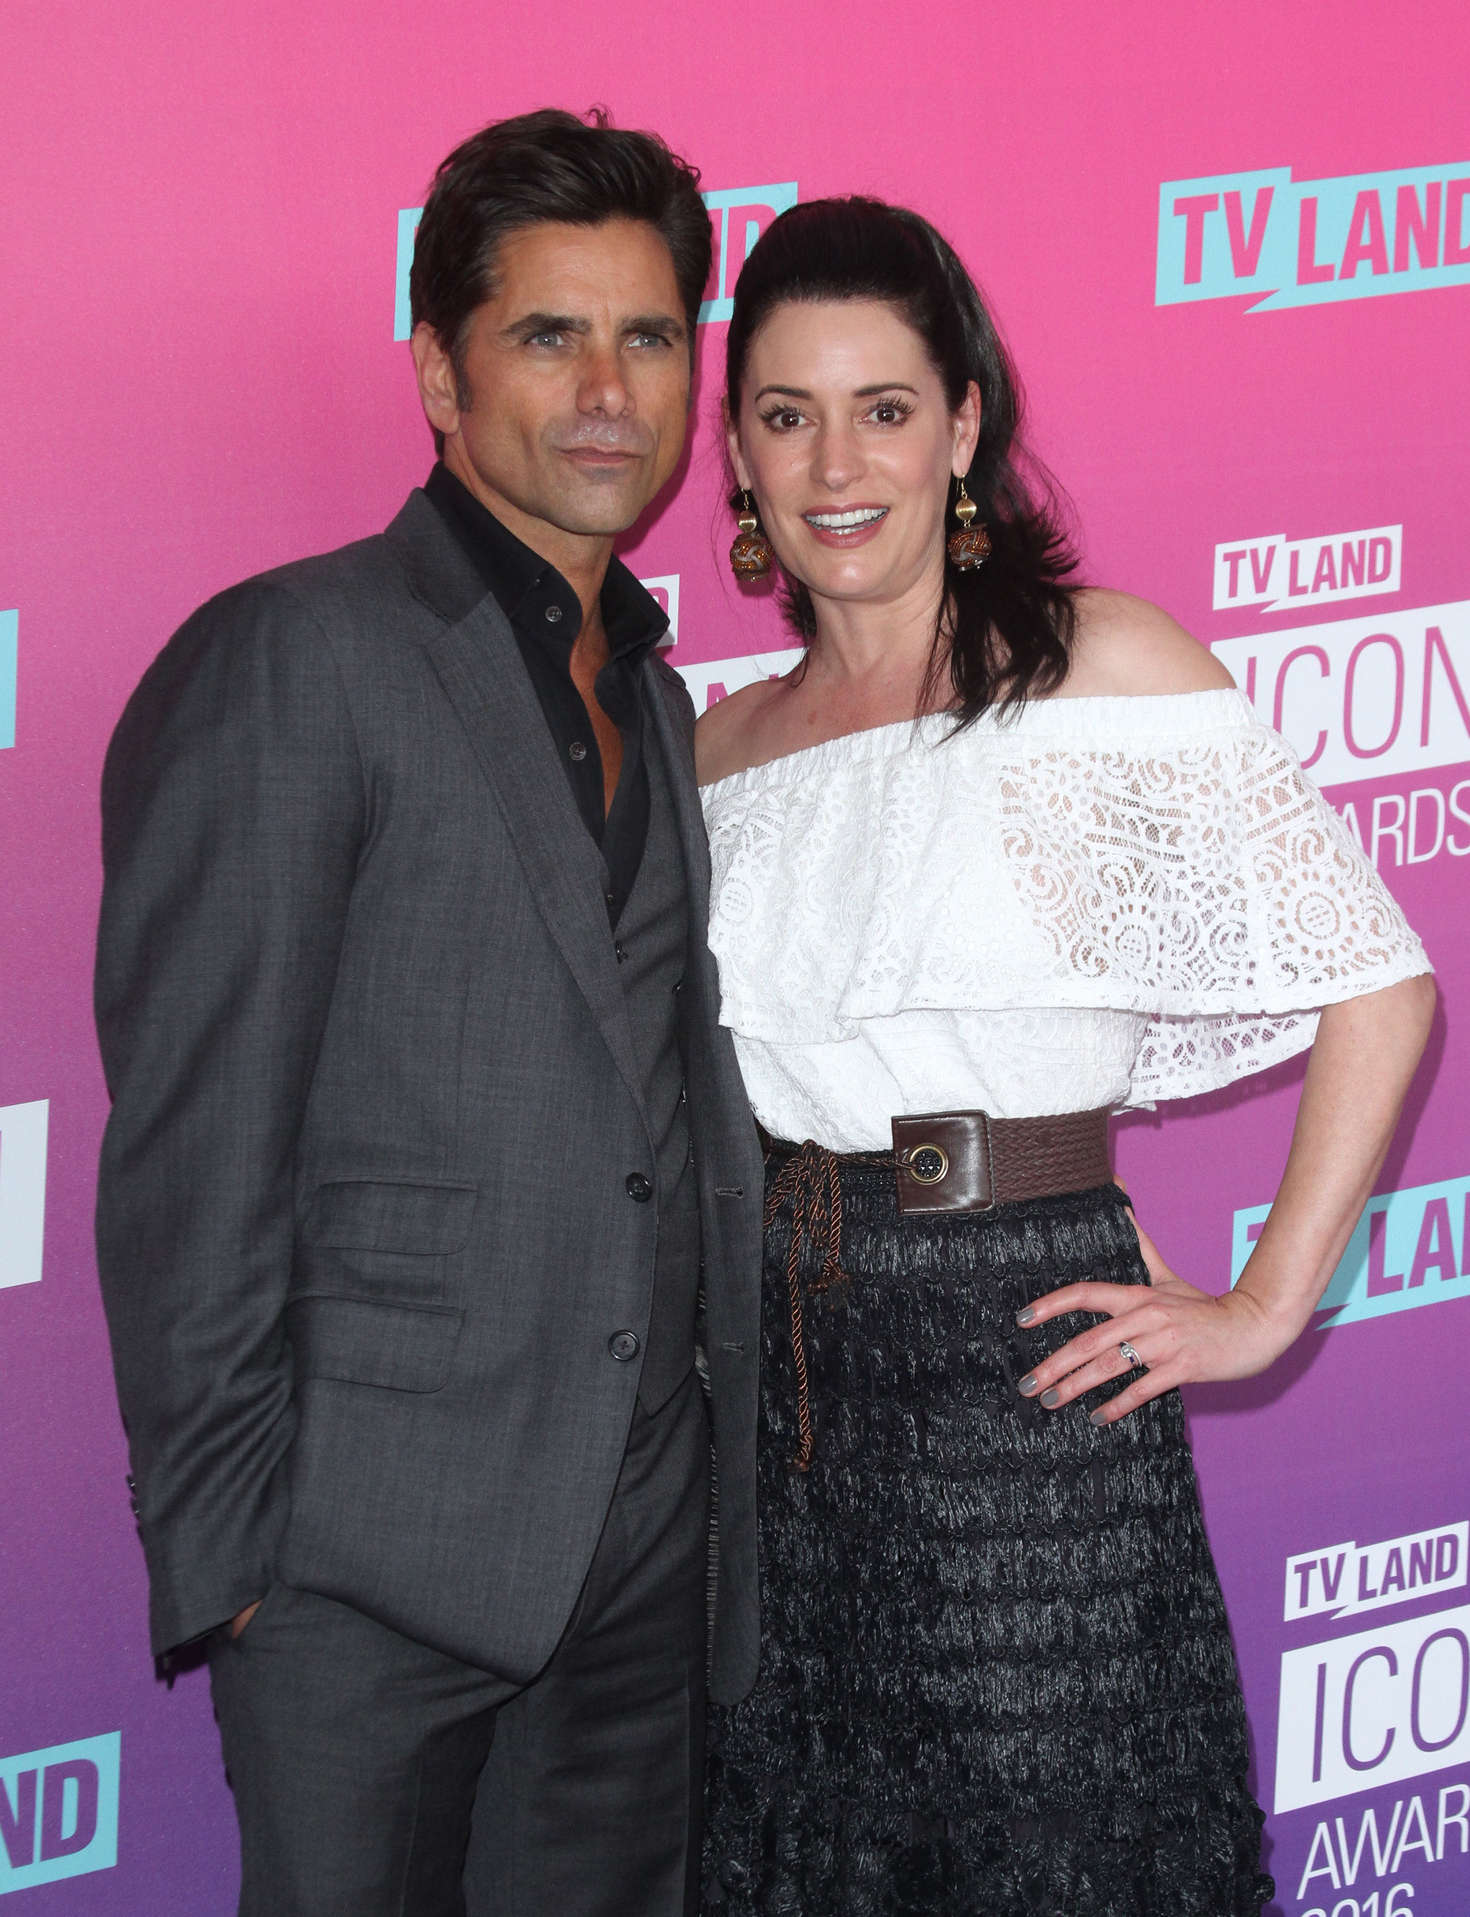 Paget Brewster TV Land Icon Awards in Santa Monica